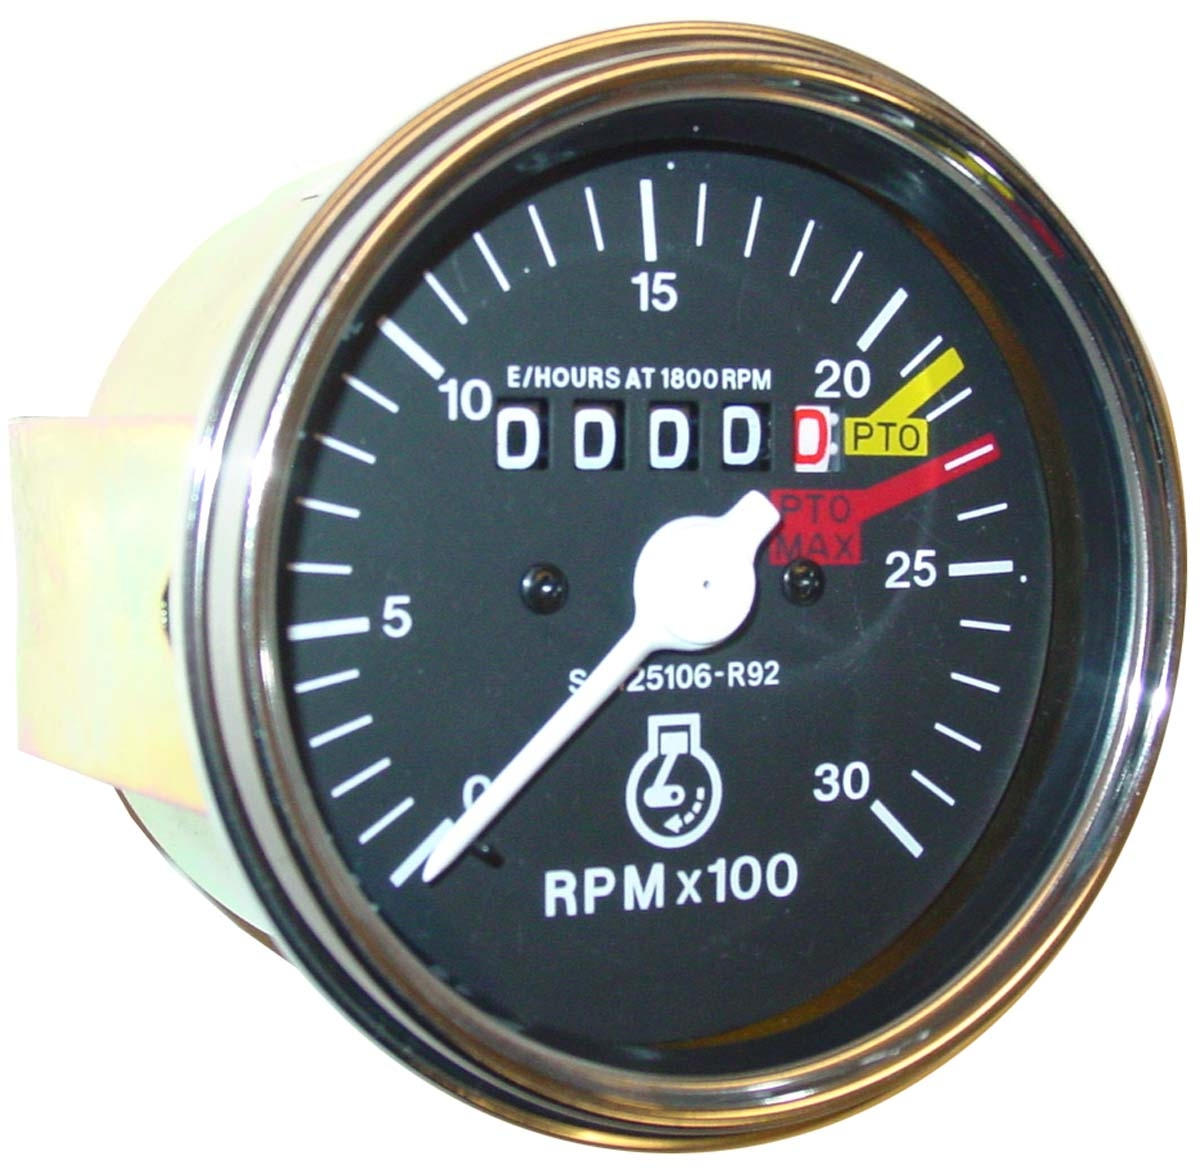 Tachometer - Farmall Parts - International Harvester Farmall Tractor Parts